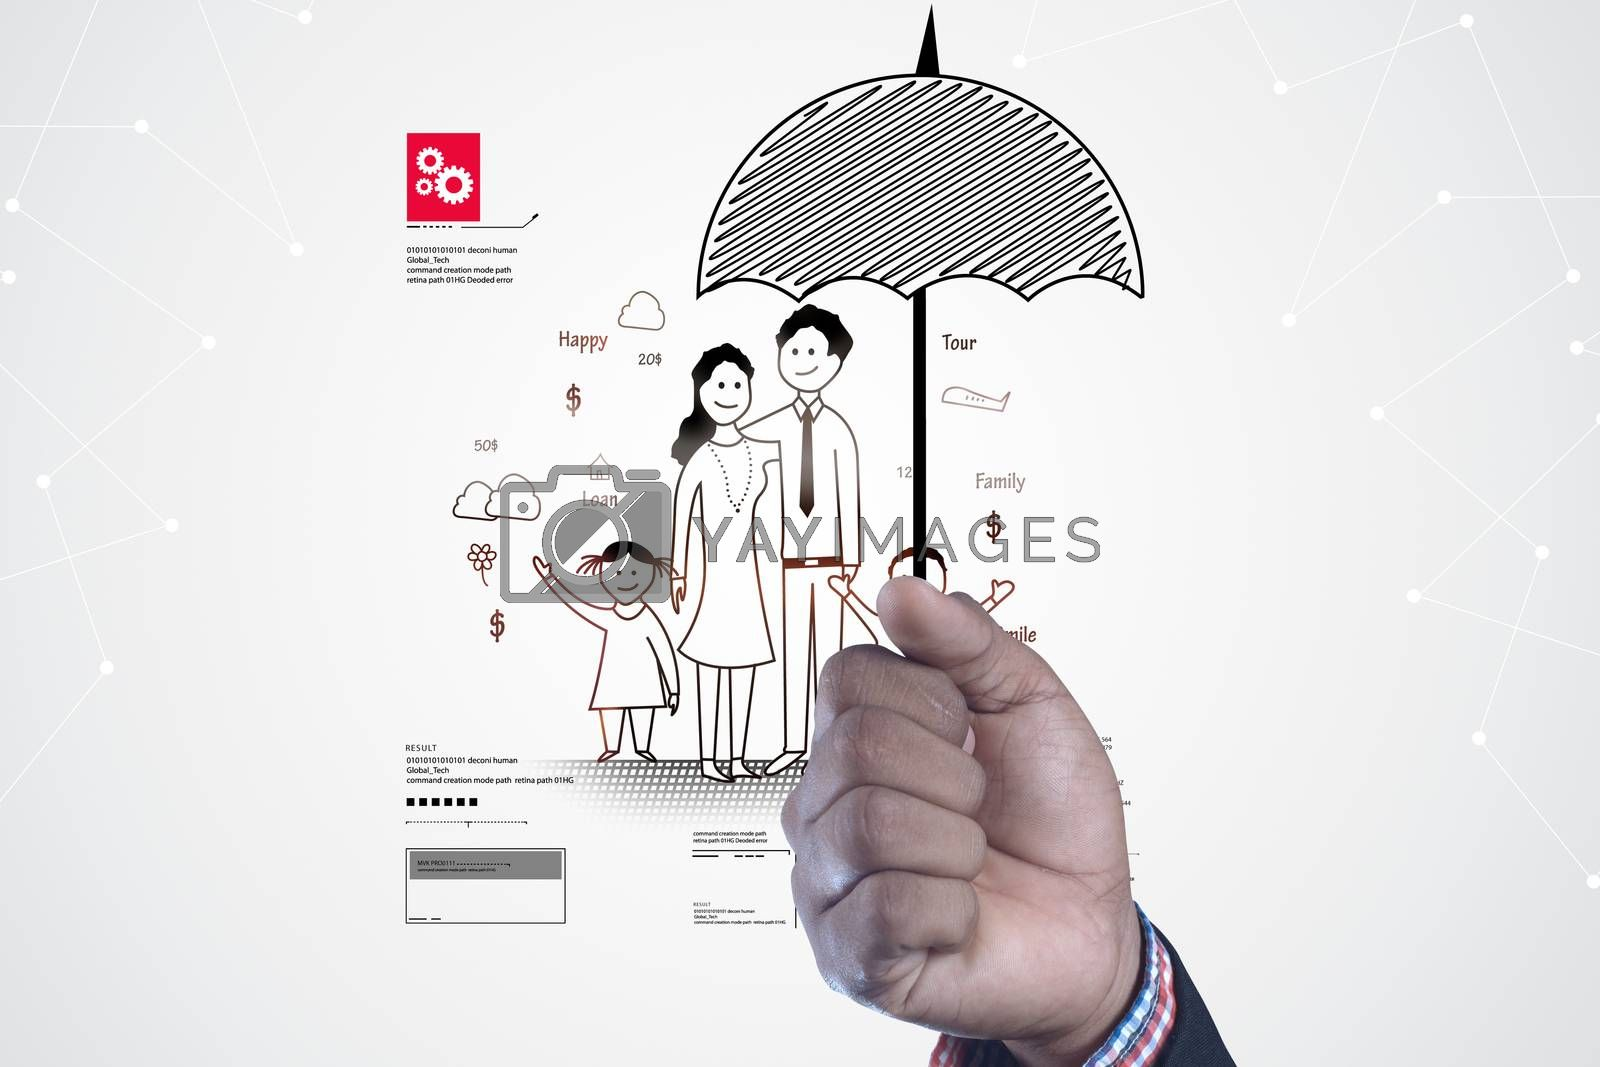 Insurance concept by cuteimage